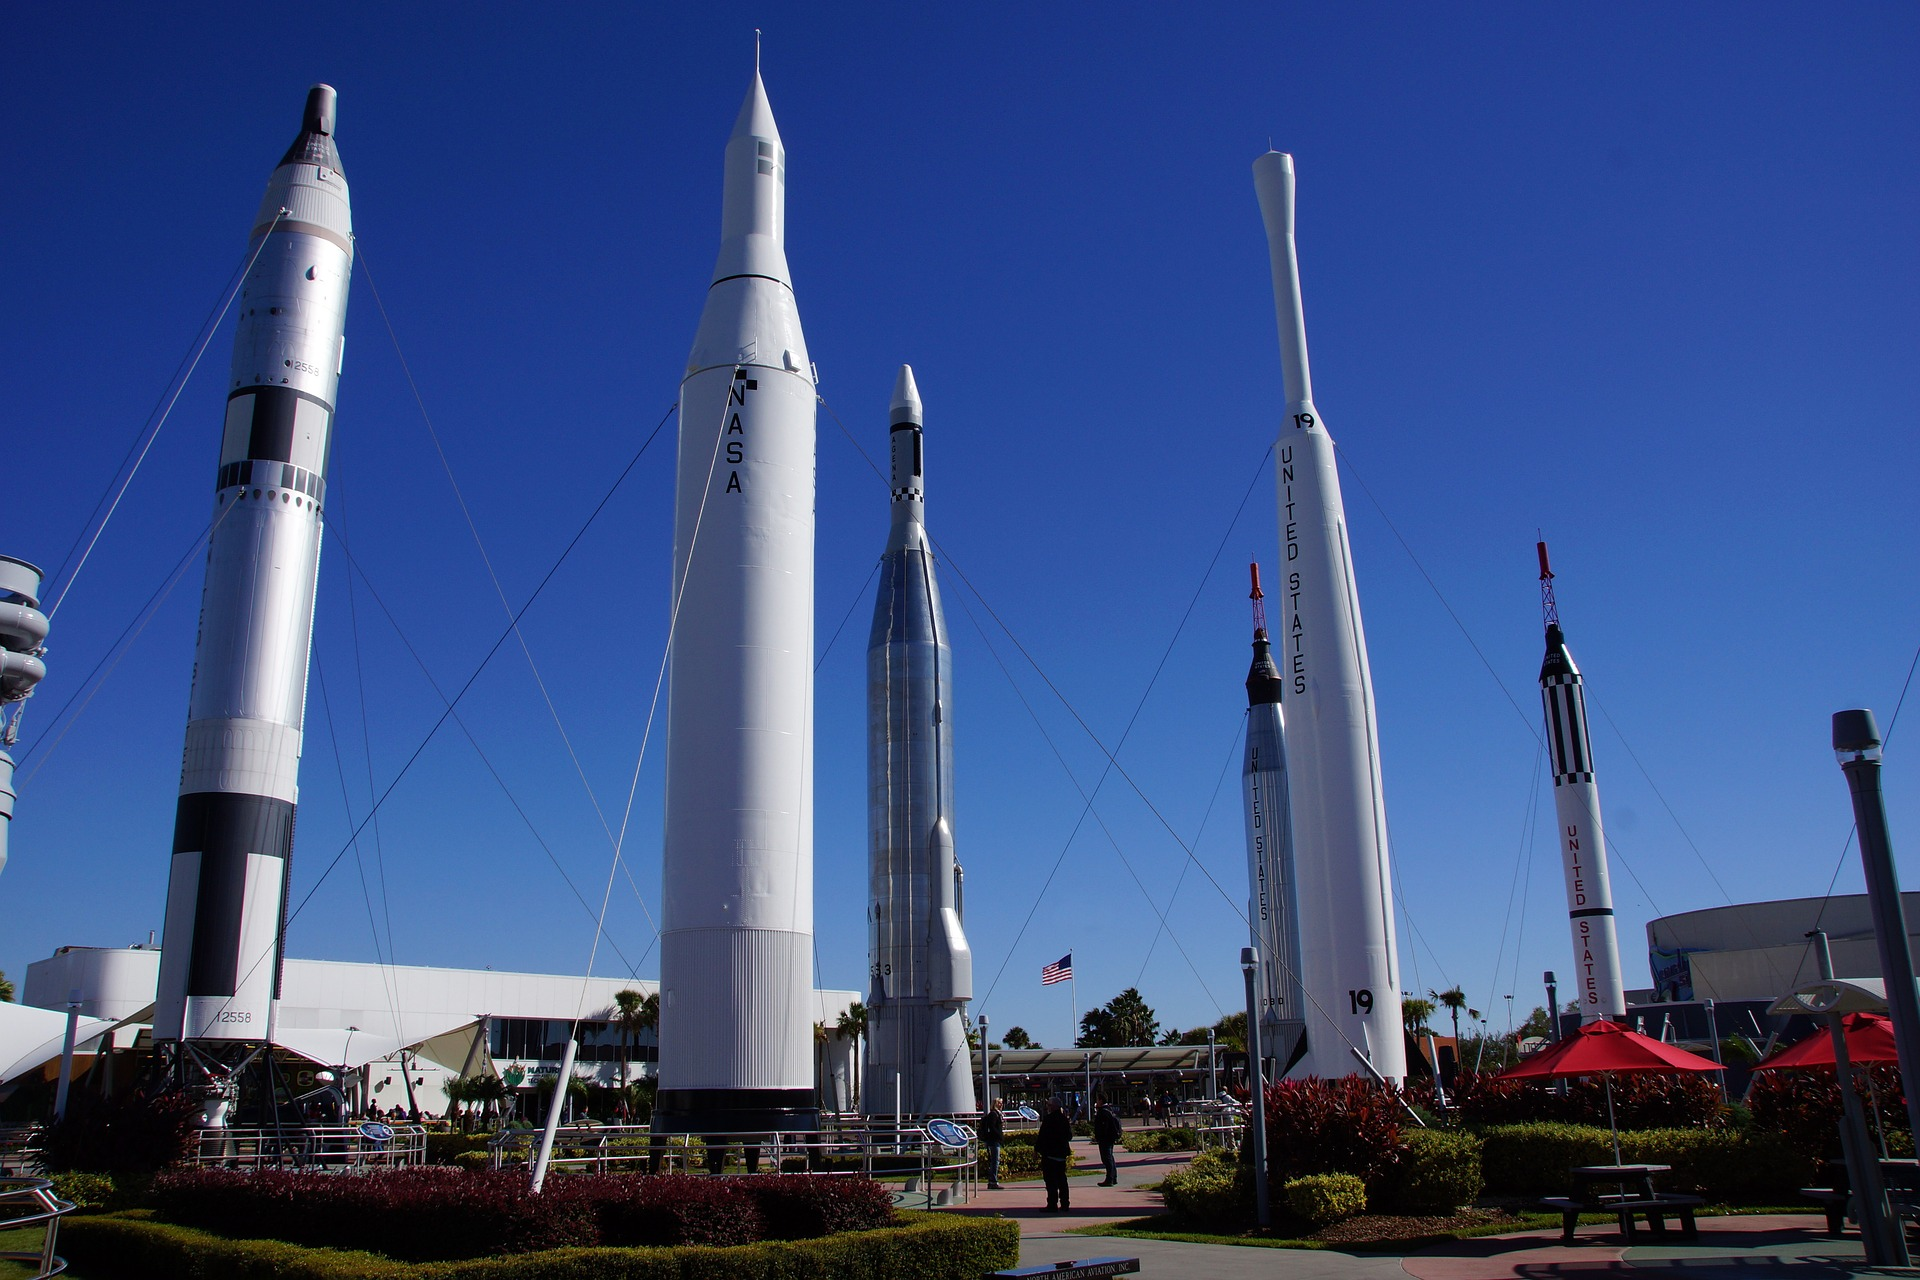 cape-canaveral-992547_1920.jpg